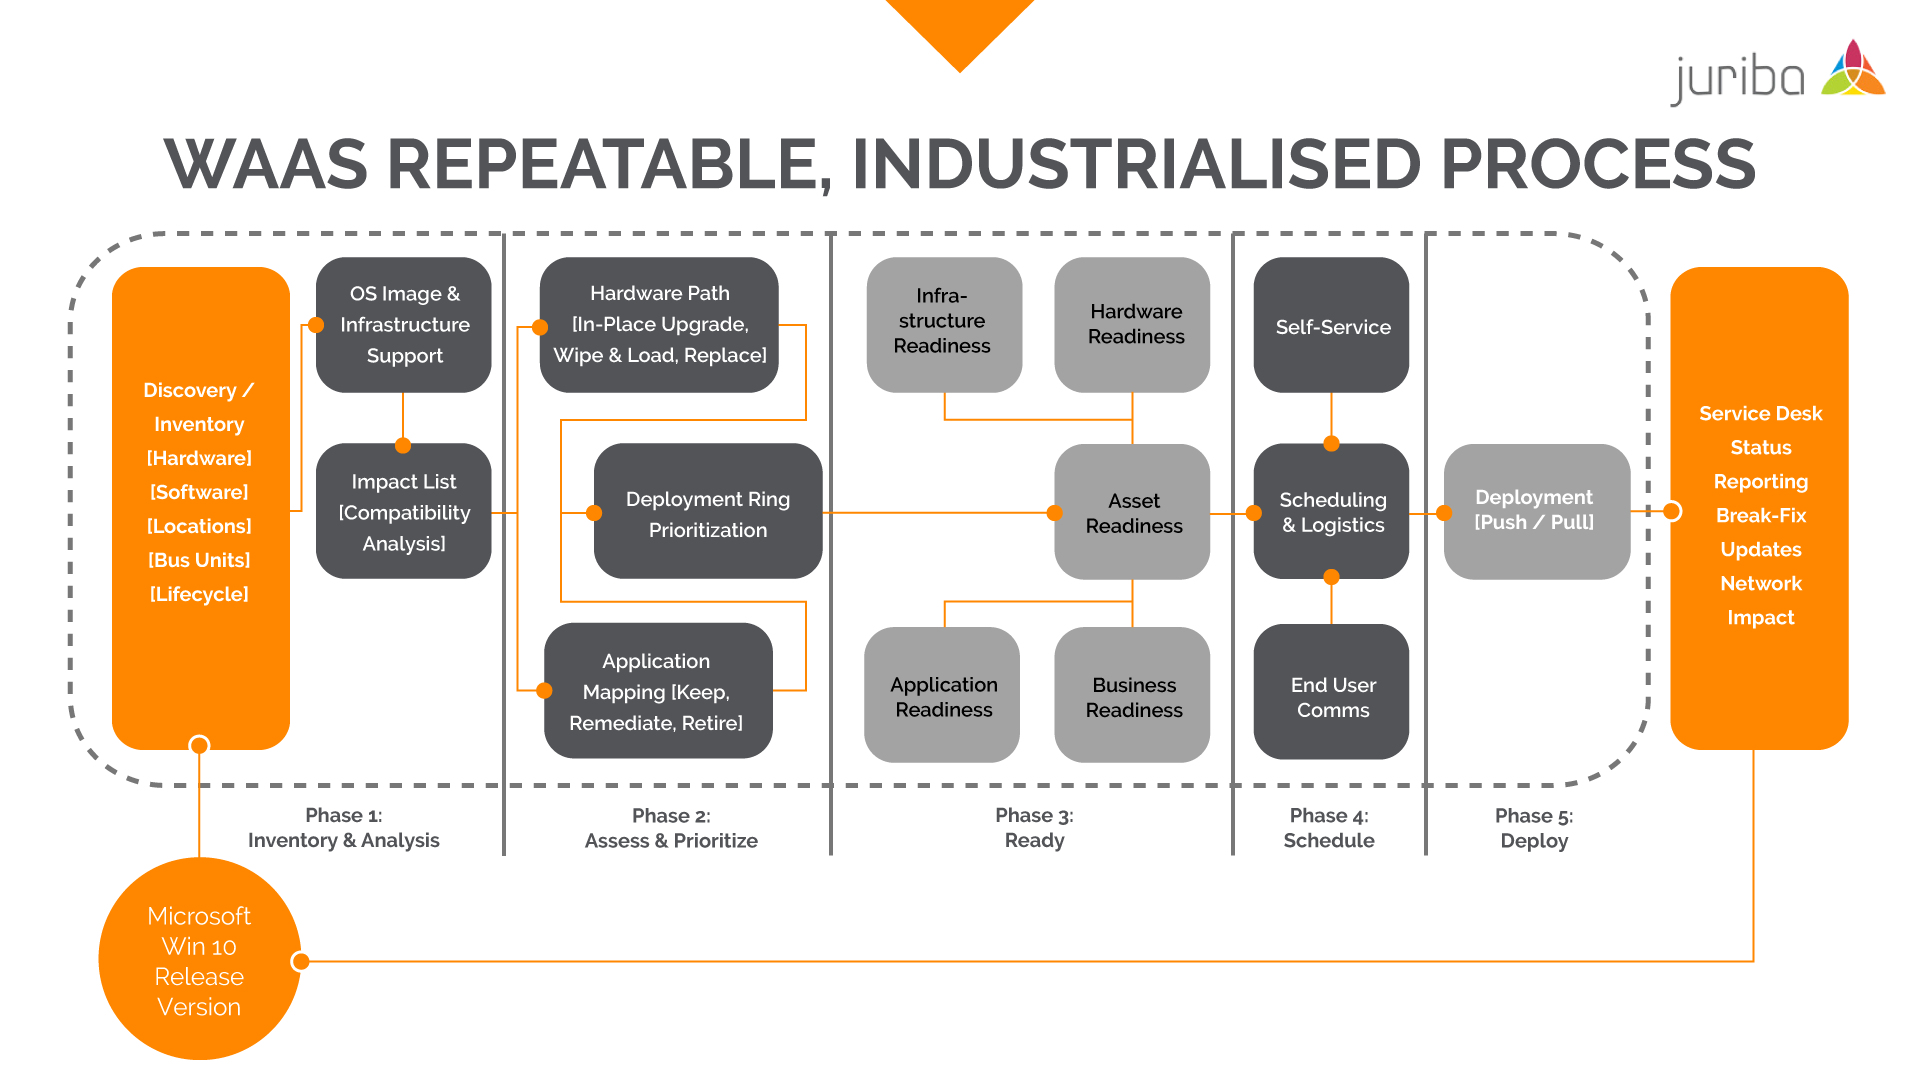 WaaSRepeatableIndustrializedProcess